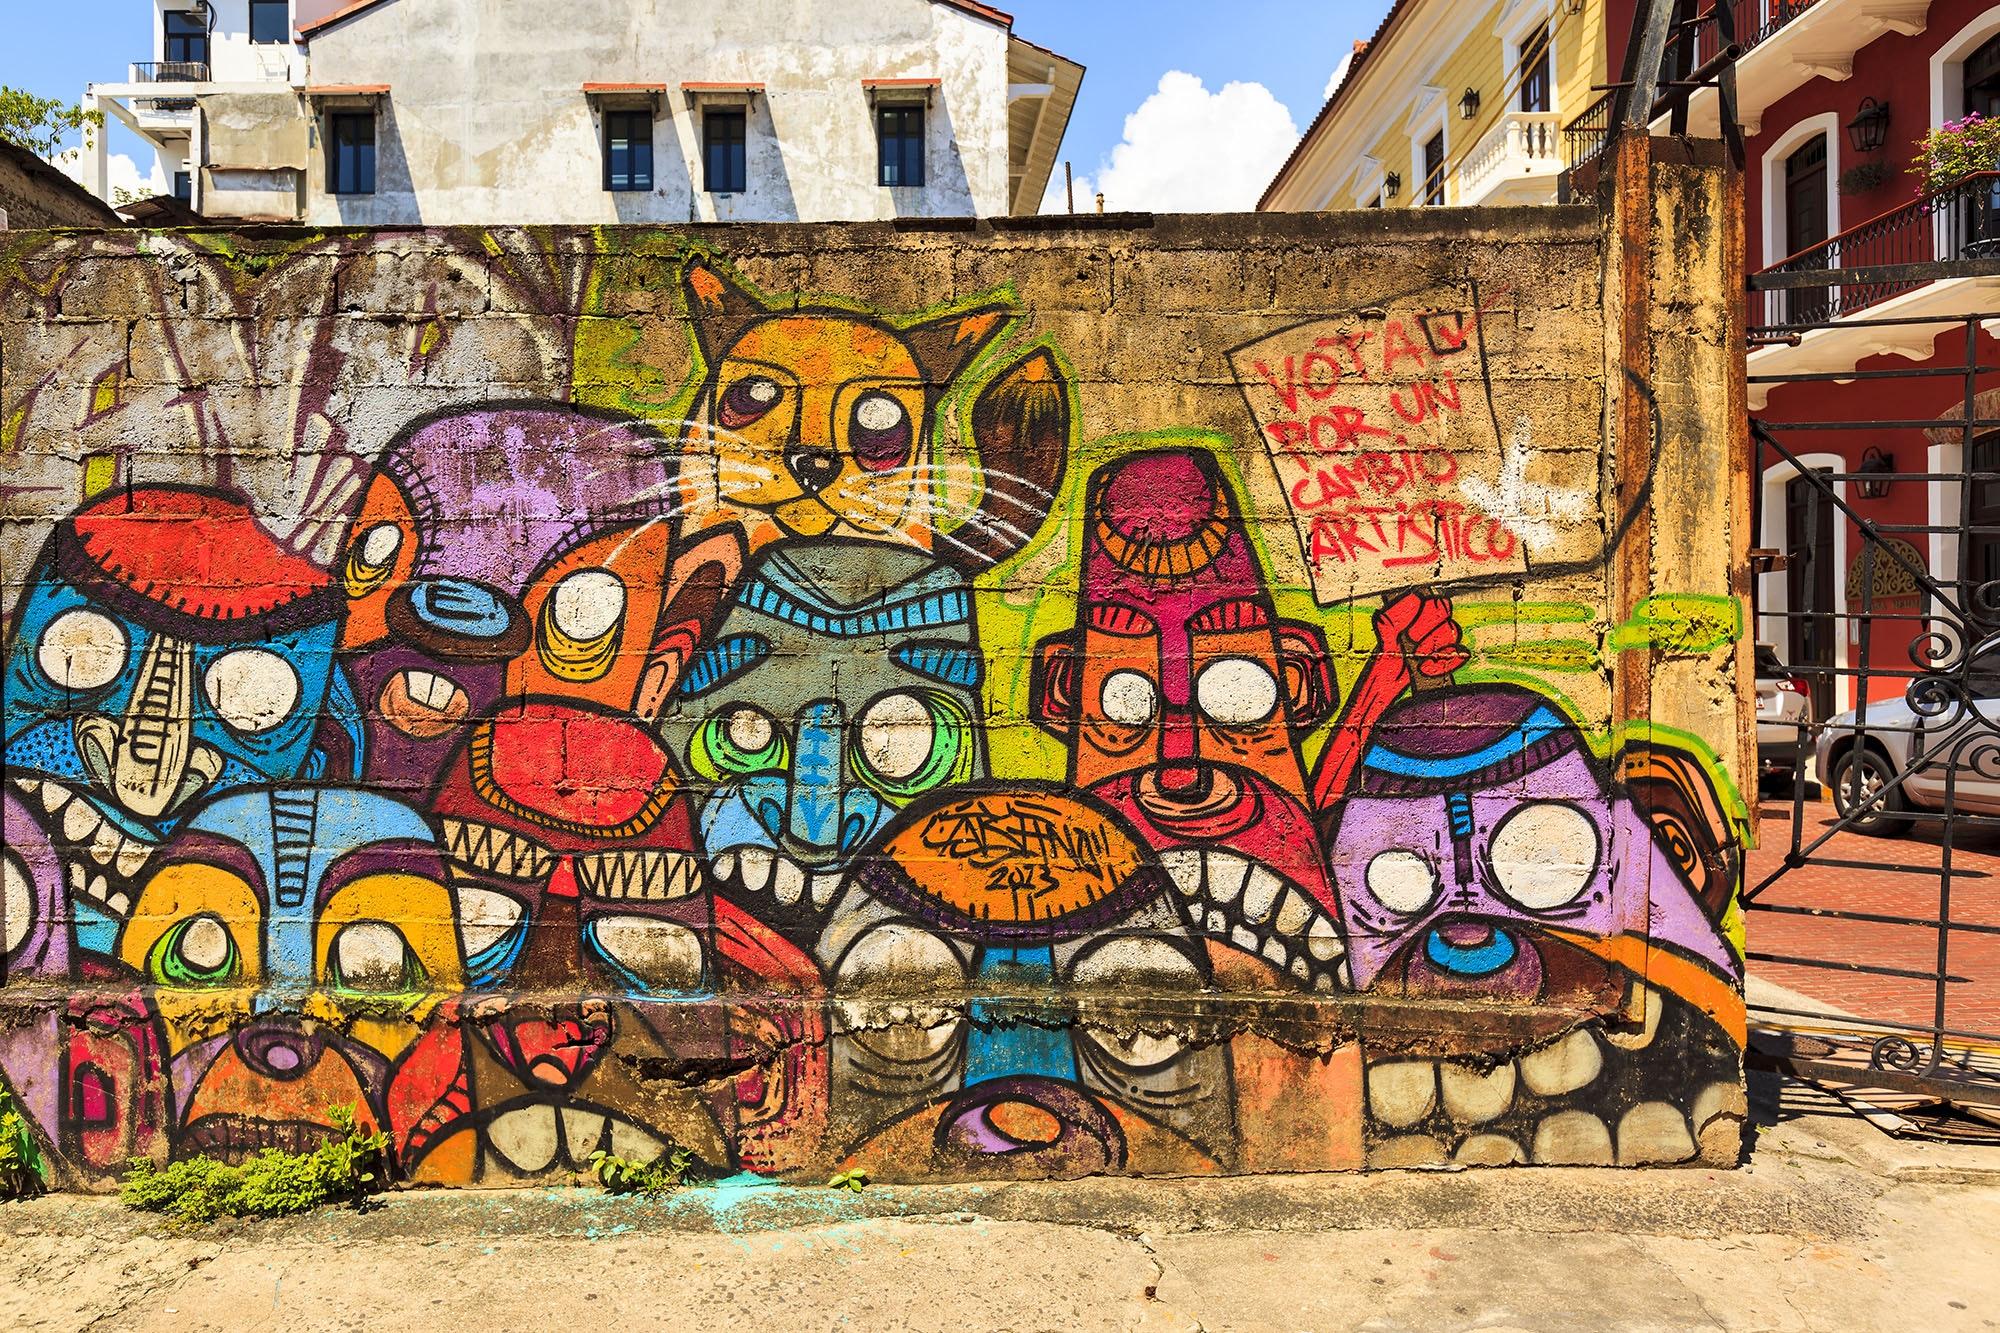 """A mural in Panama City's Casco Viejo calls for an """"artistic change,"""" possibly a protest against the city's anti-graffiti laws."""